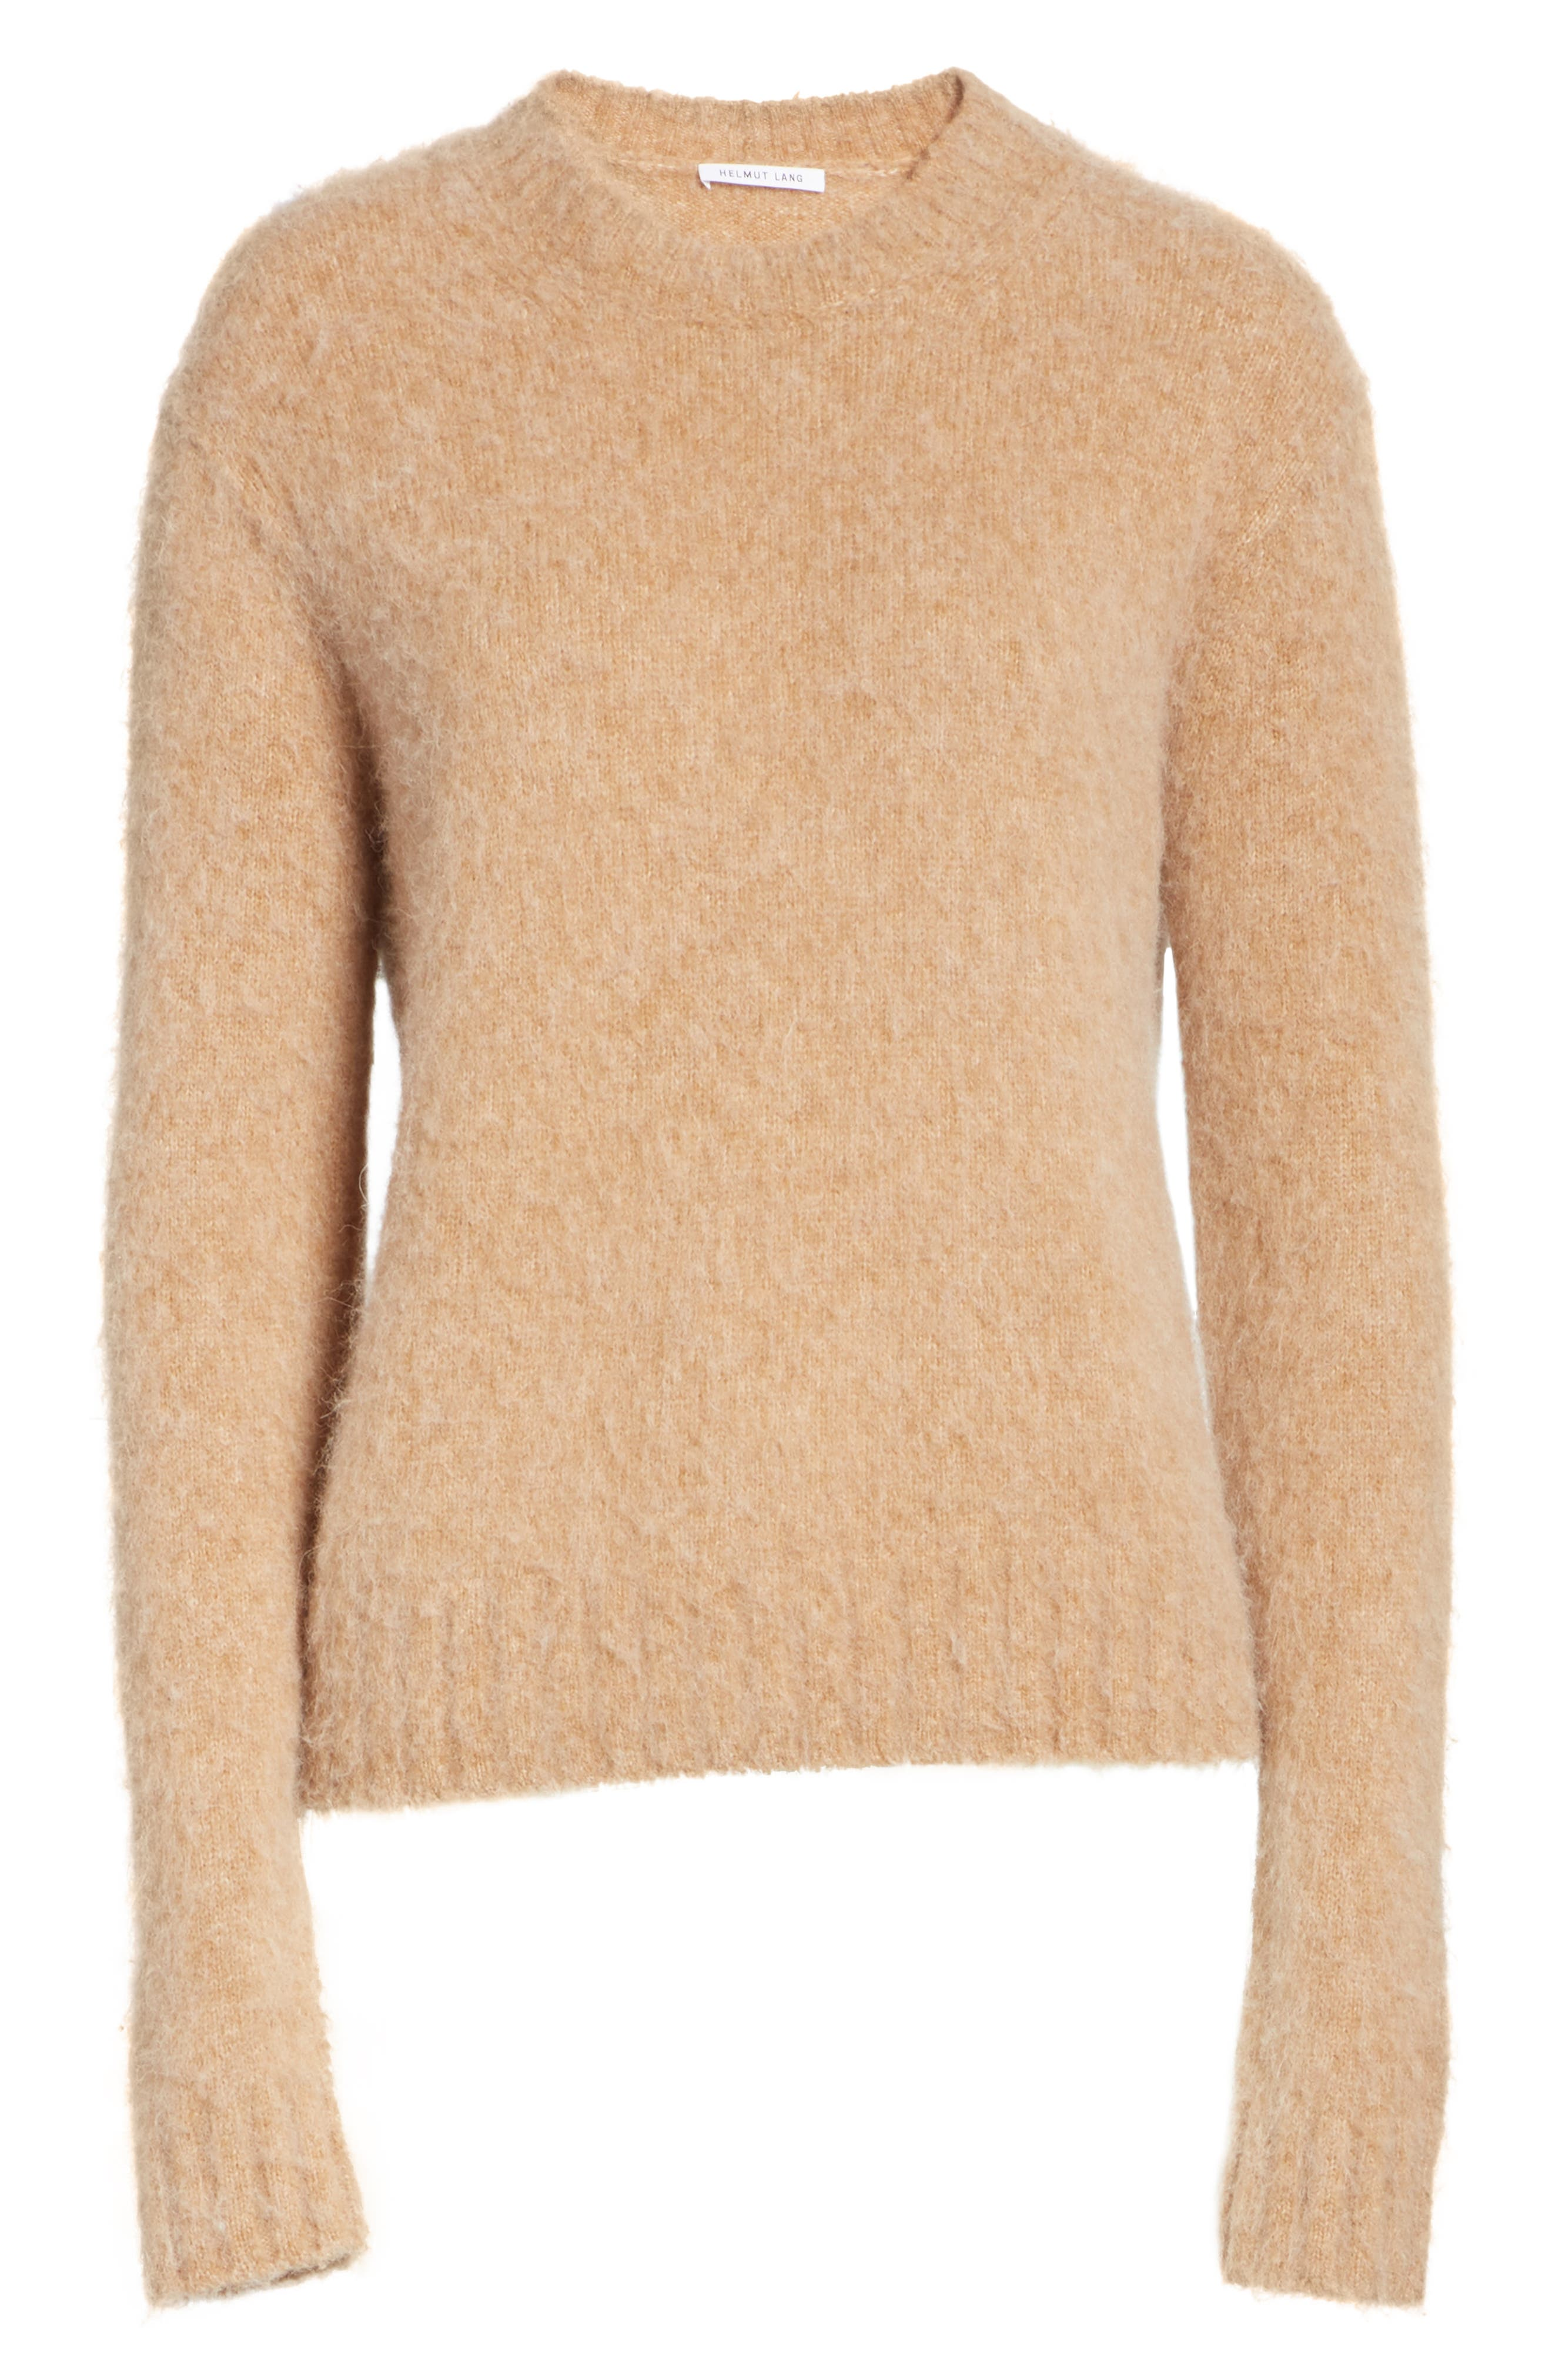 Brushed Wool & Alpaca Blend Sweater,                             Alternate thumbnail 6, color,                             BAND